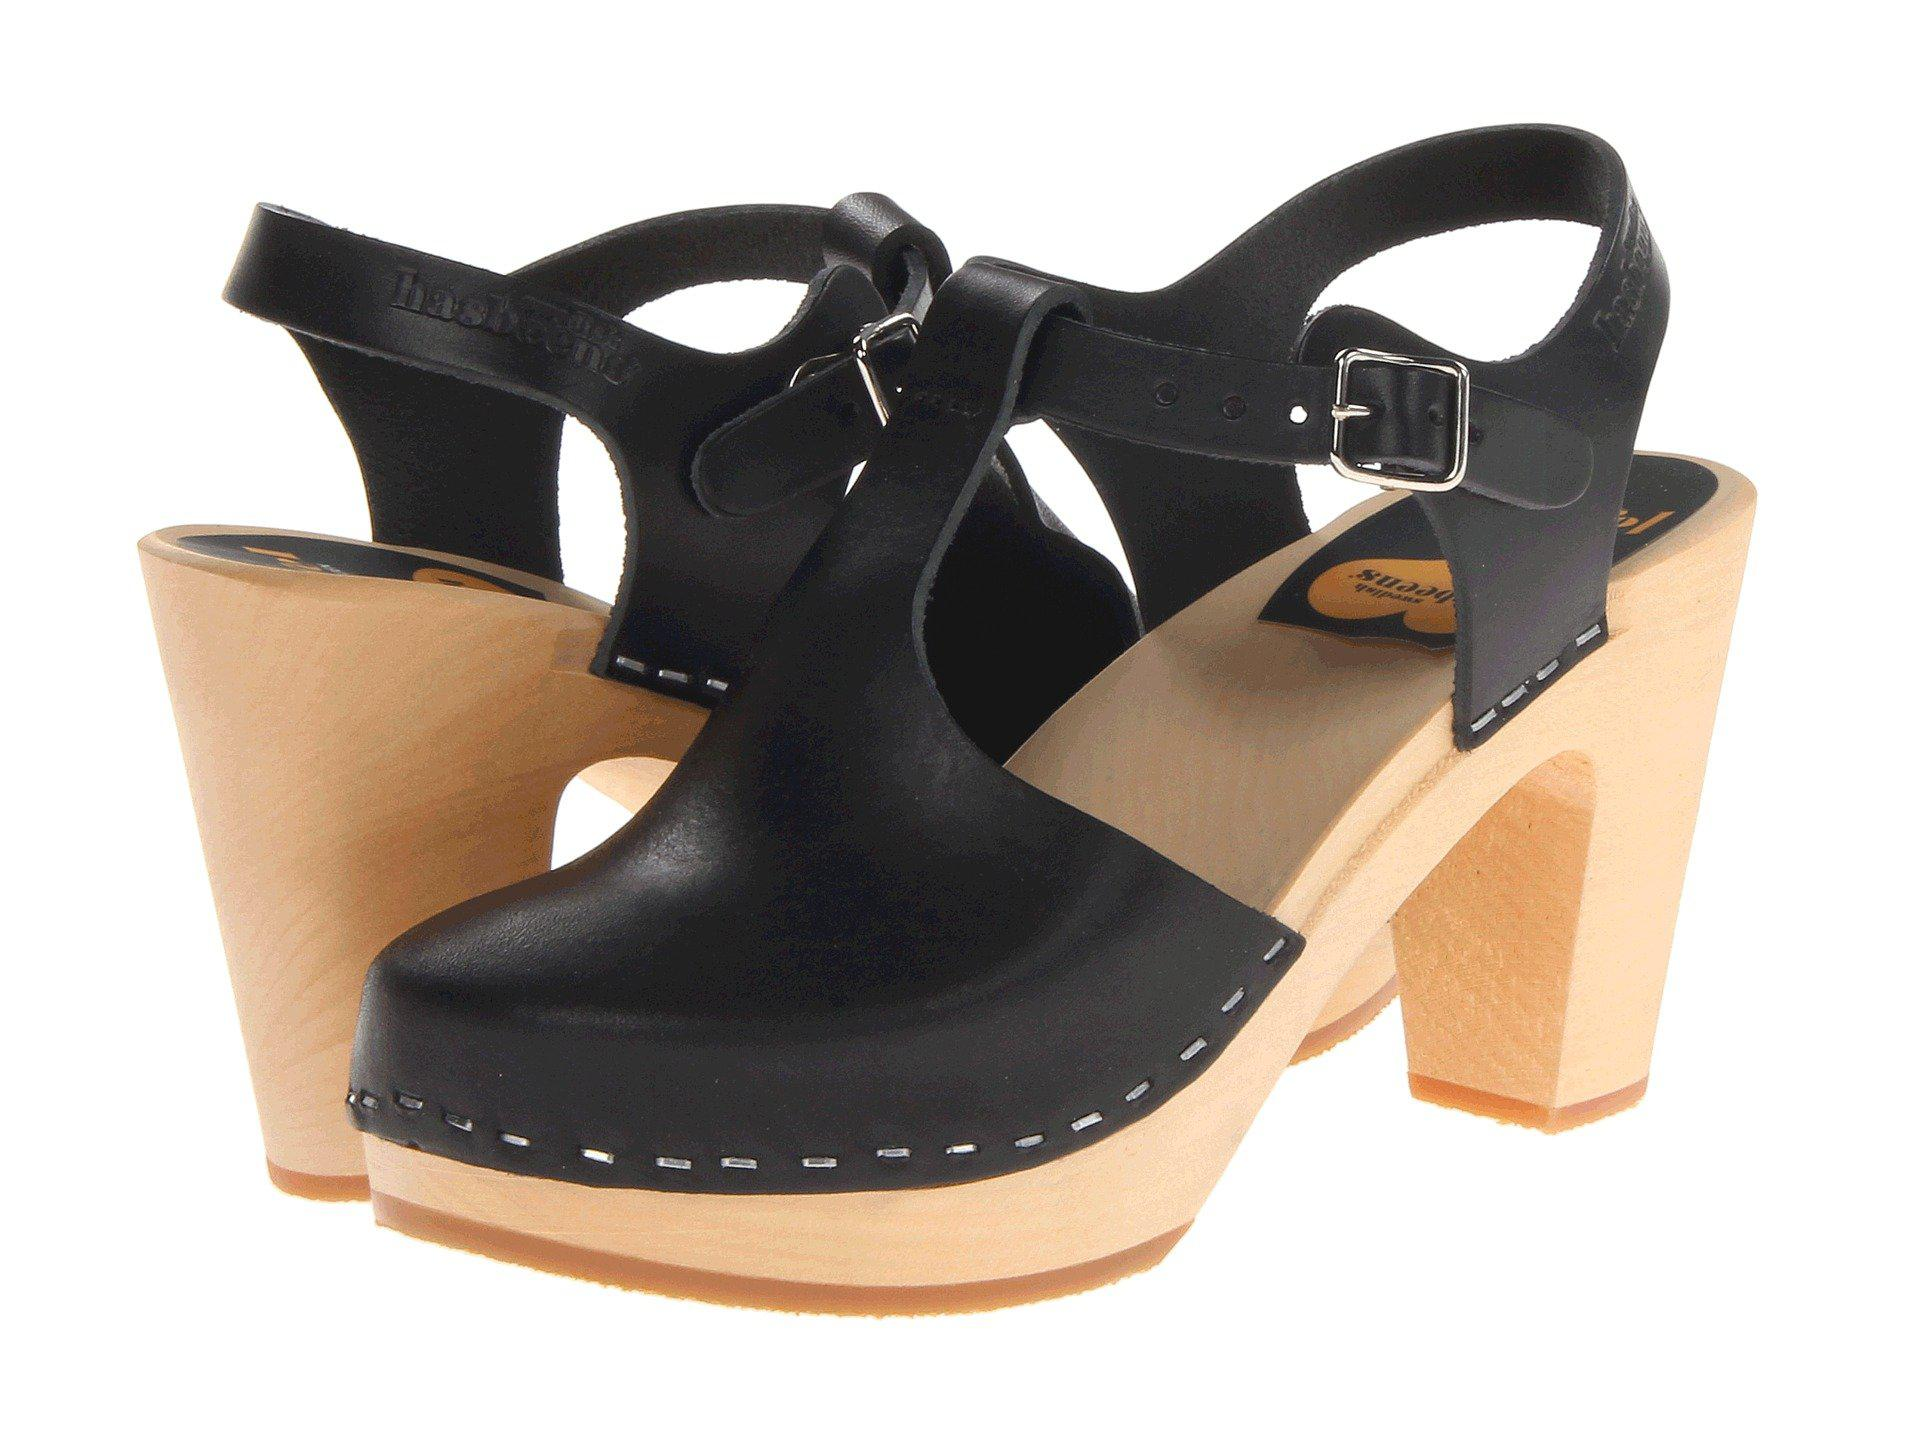 Lyst - Swedish Hasbeens T-strap Sky High (nature) Women s Clog Shoes ... b8f506095